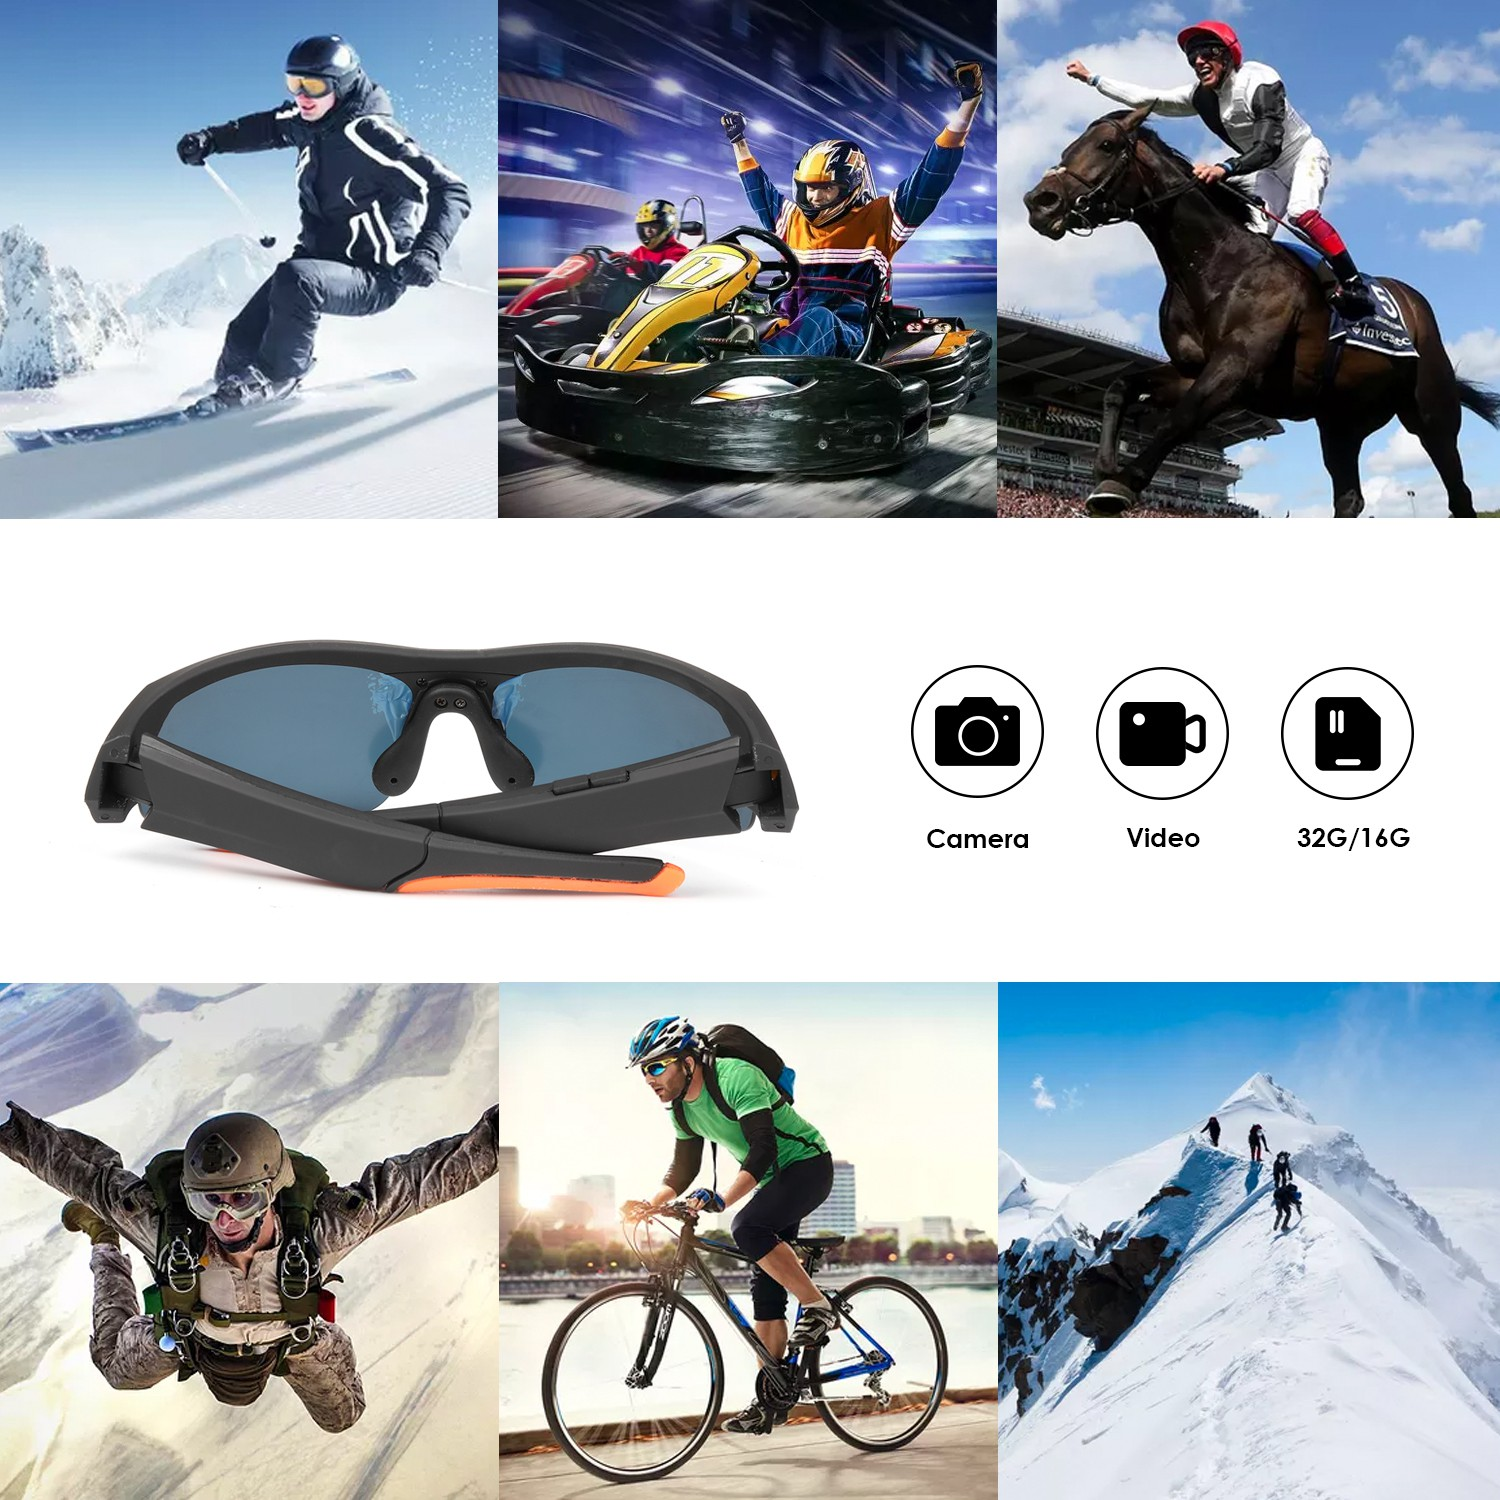 Multifunctional Sunglasses Camera with Bluetooth Headset HD 1080P Camcorder Built-in 16G/32G Memory Waterproof Outdoors